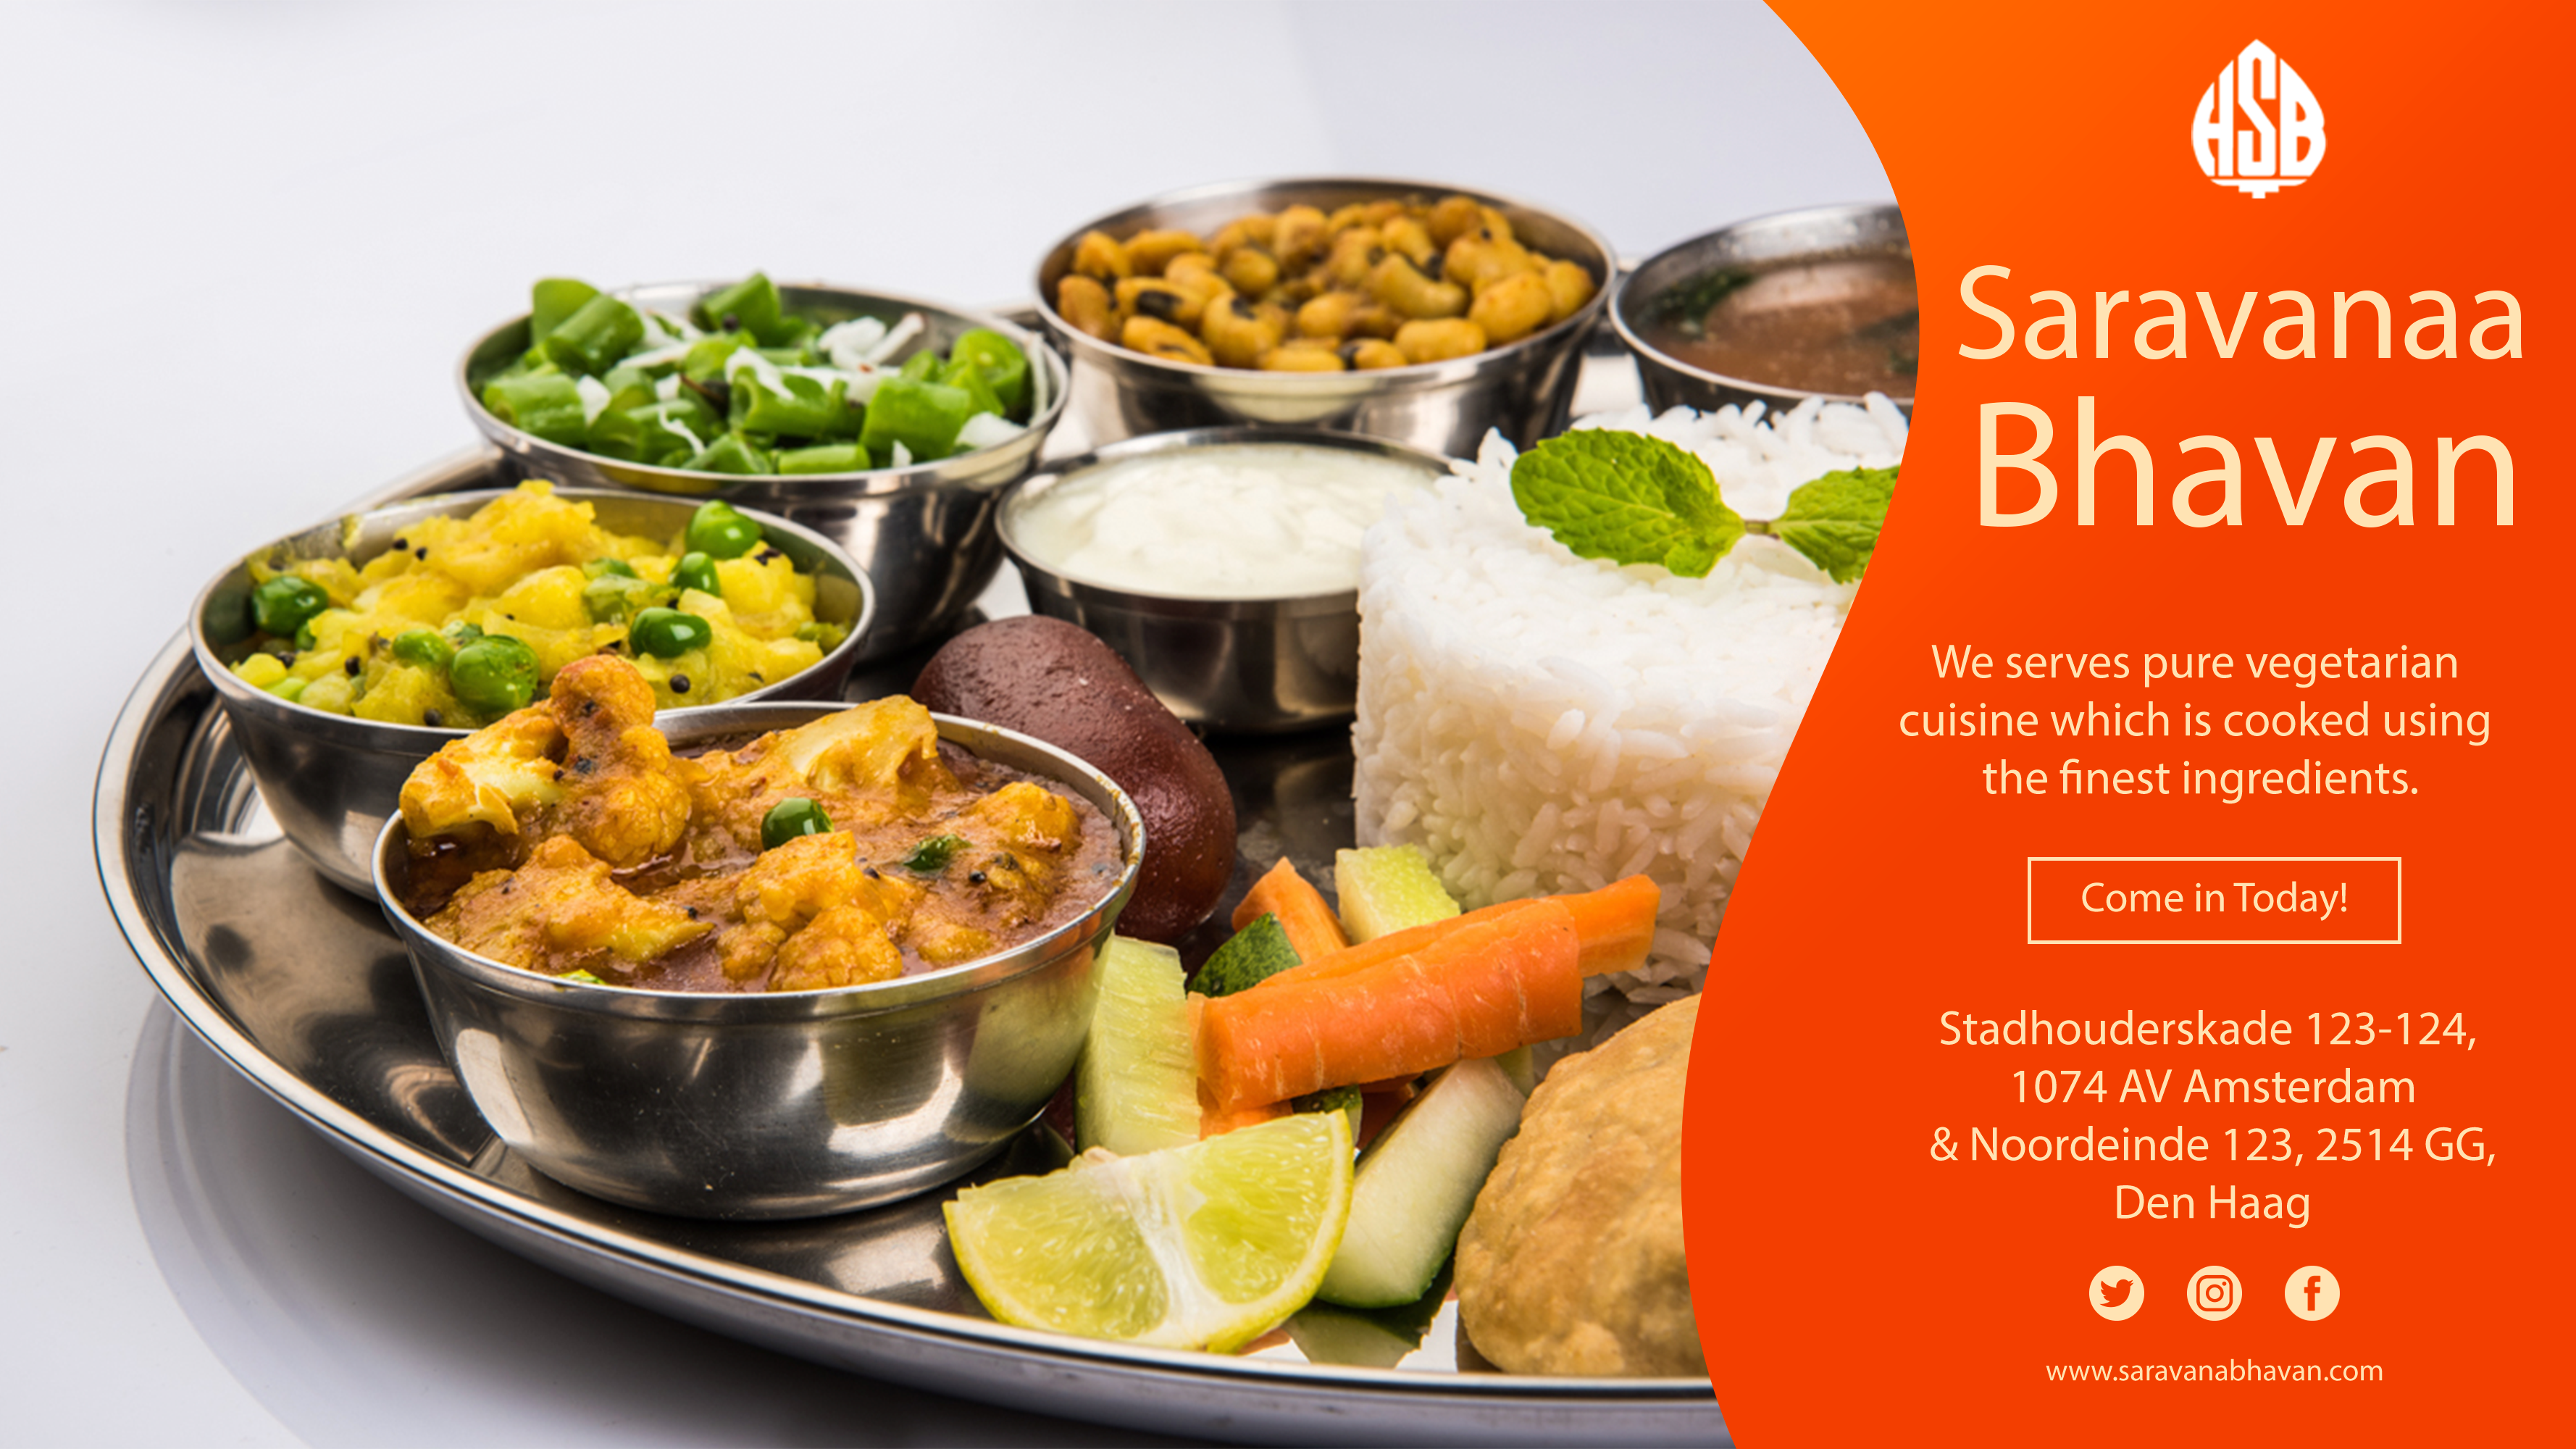 We Serves Purevegetarian Cuisine Which Is Cooked Using The Finest Ingredients Order Online Or Come Dine With Us Today Saravanaabhavan Traditionalfood